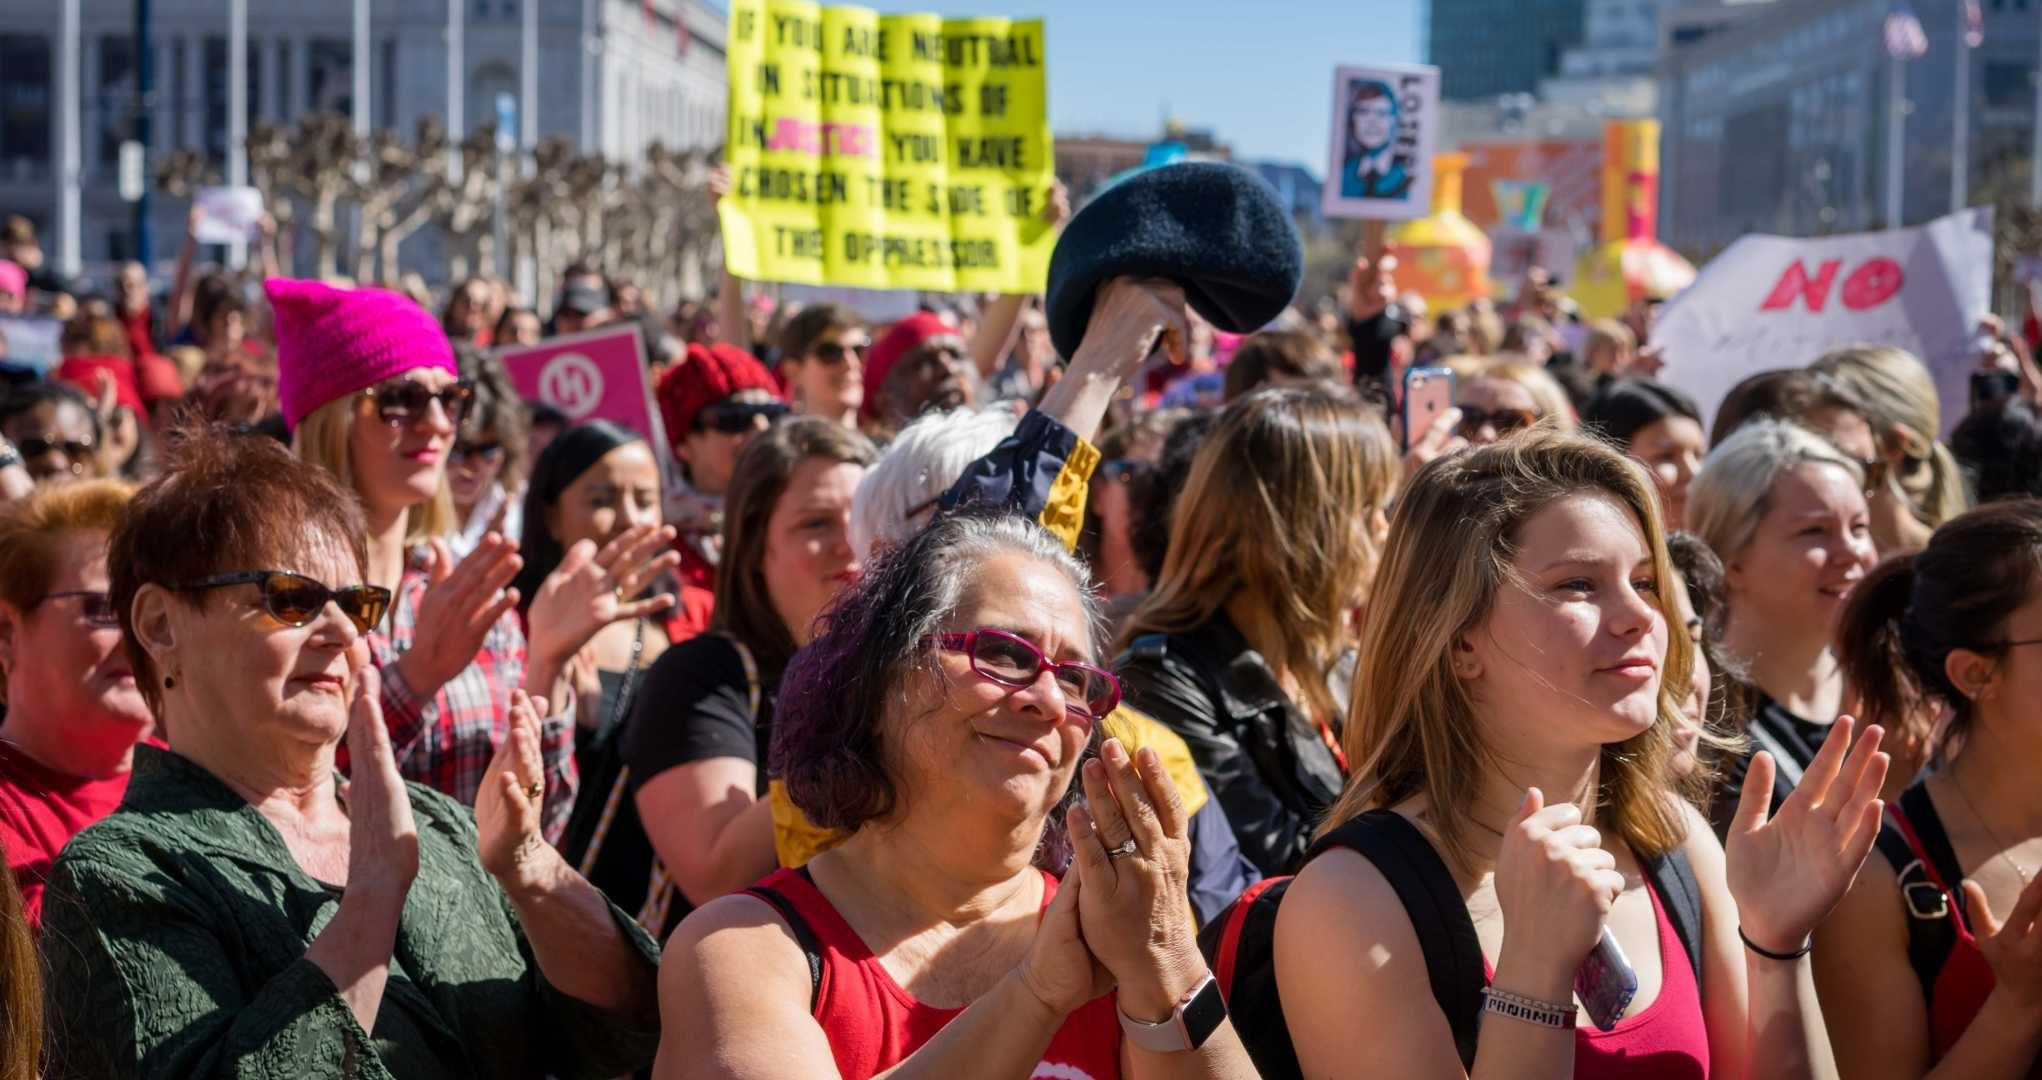 A group of women cheer at